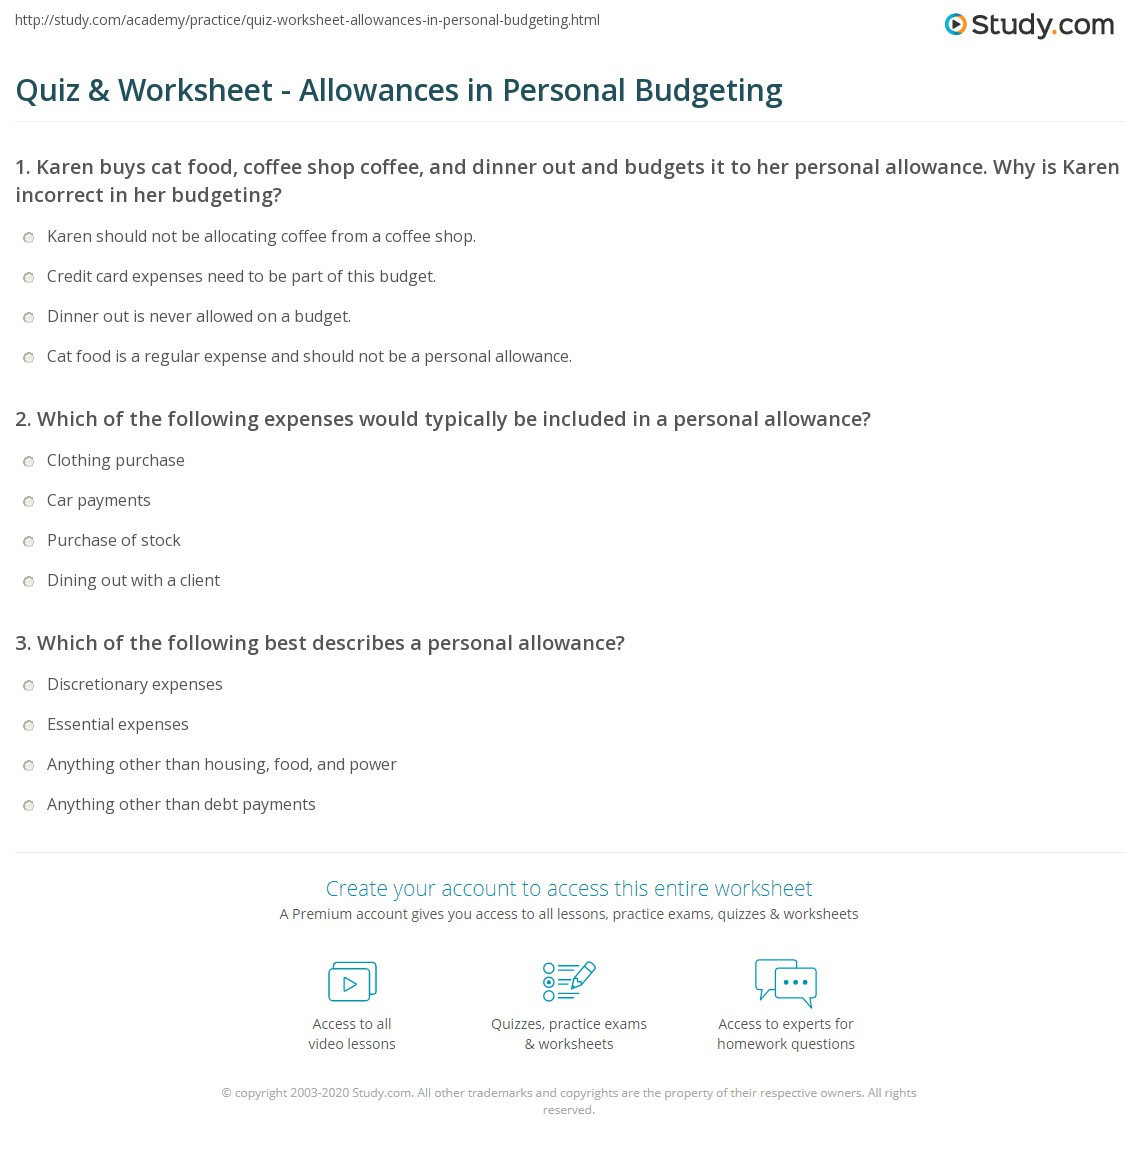 quiz worksheet allowances in personal budgeting study com